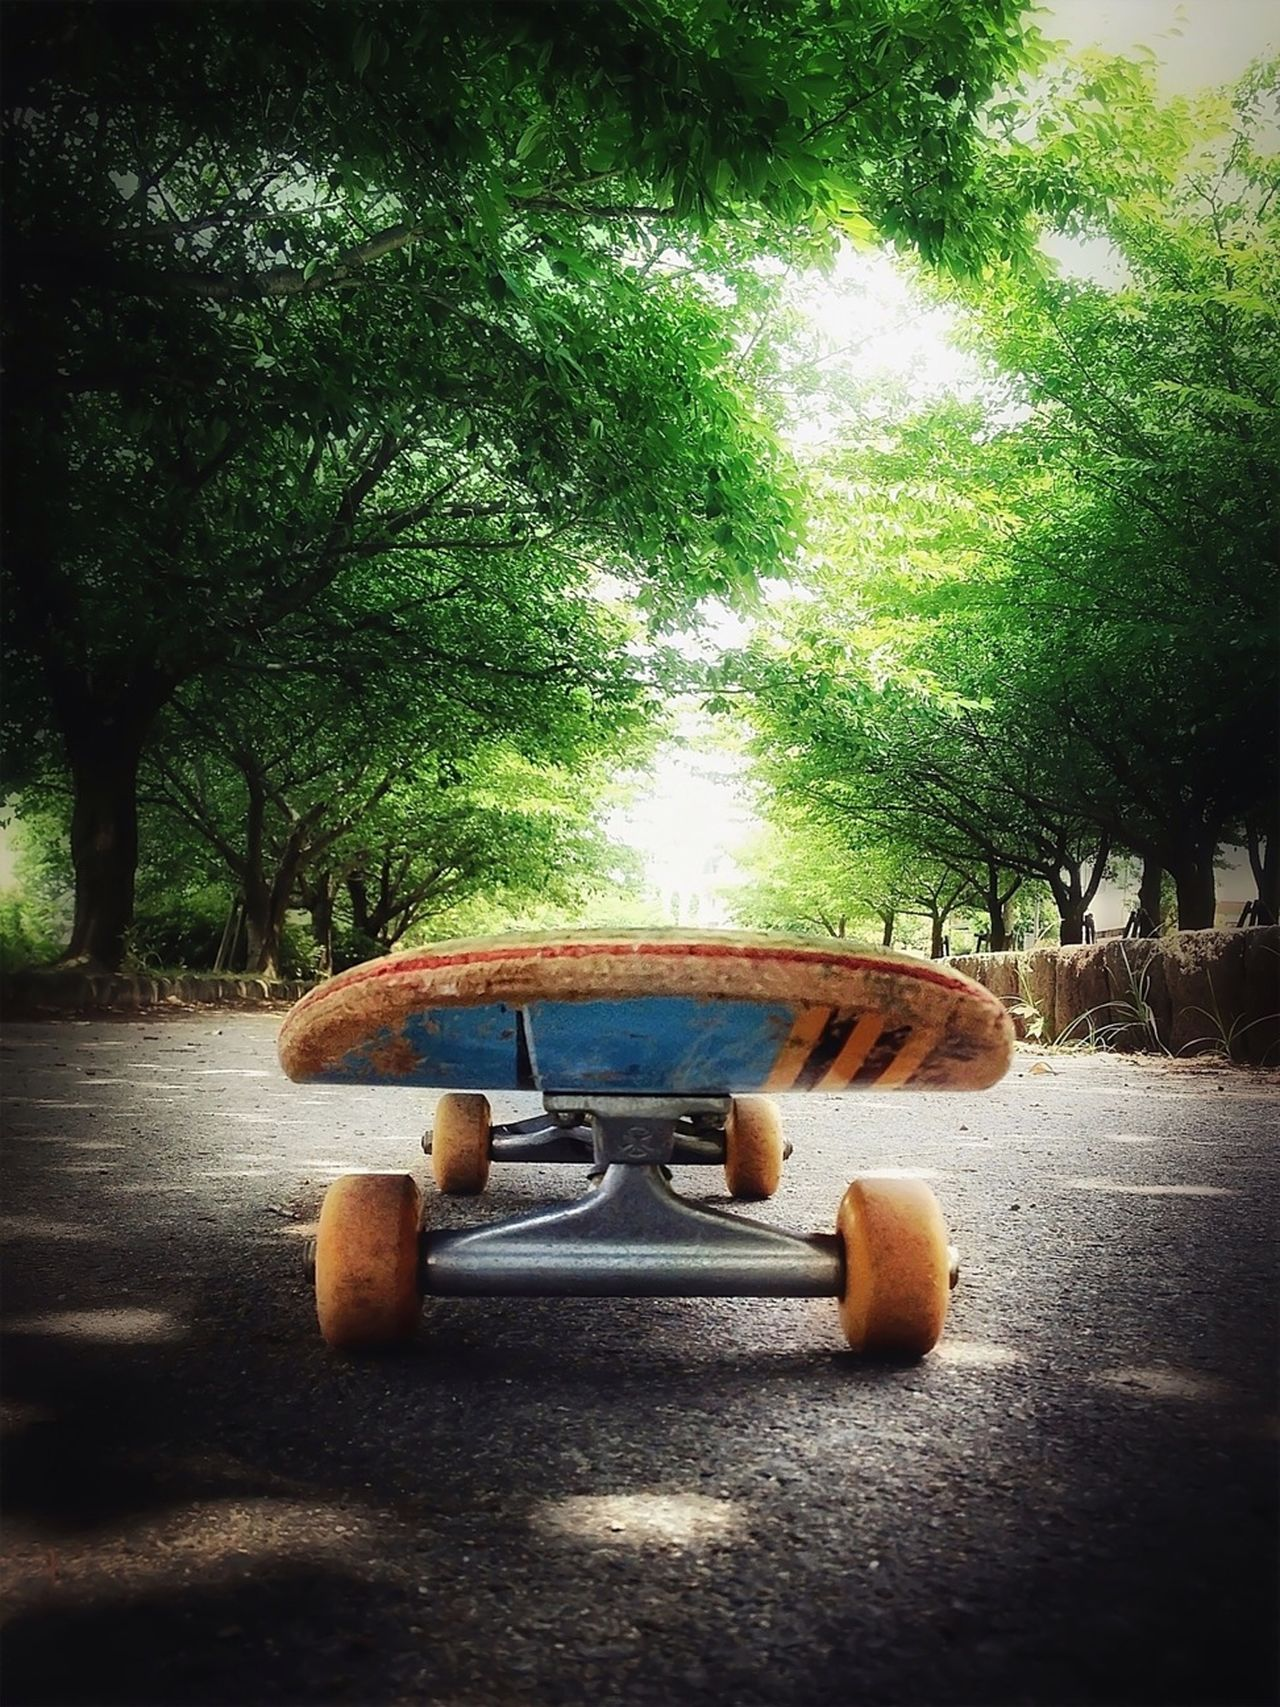 Close-up of a skateboard on road along trees